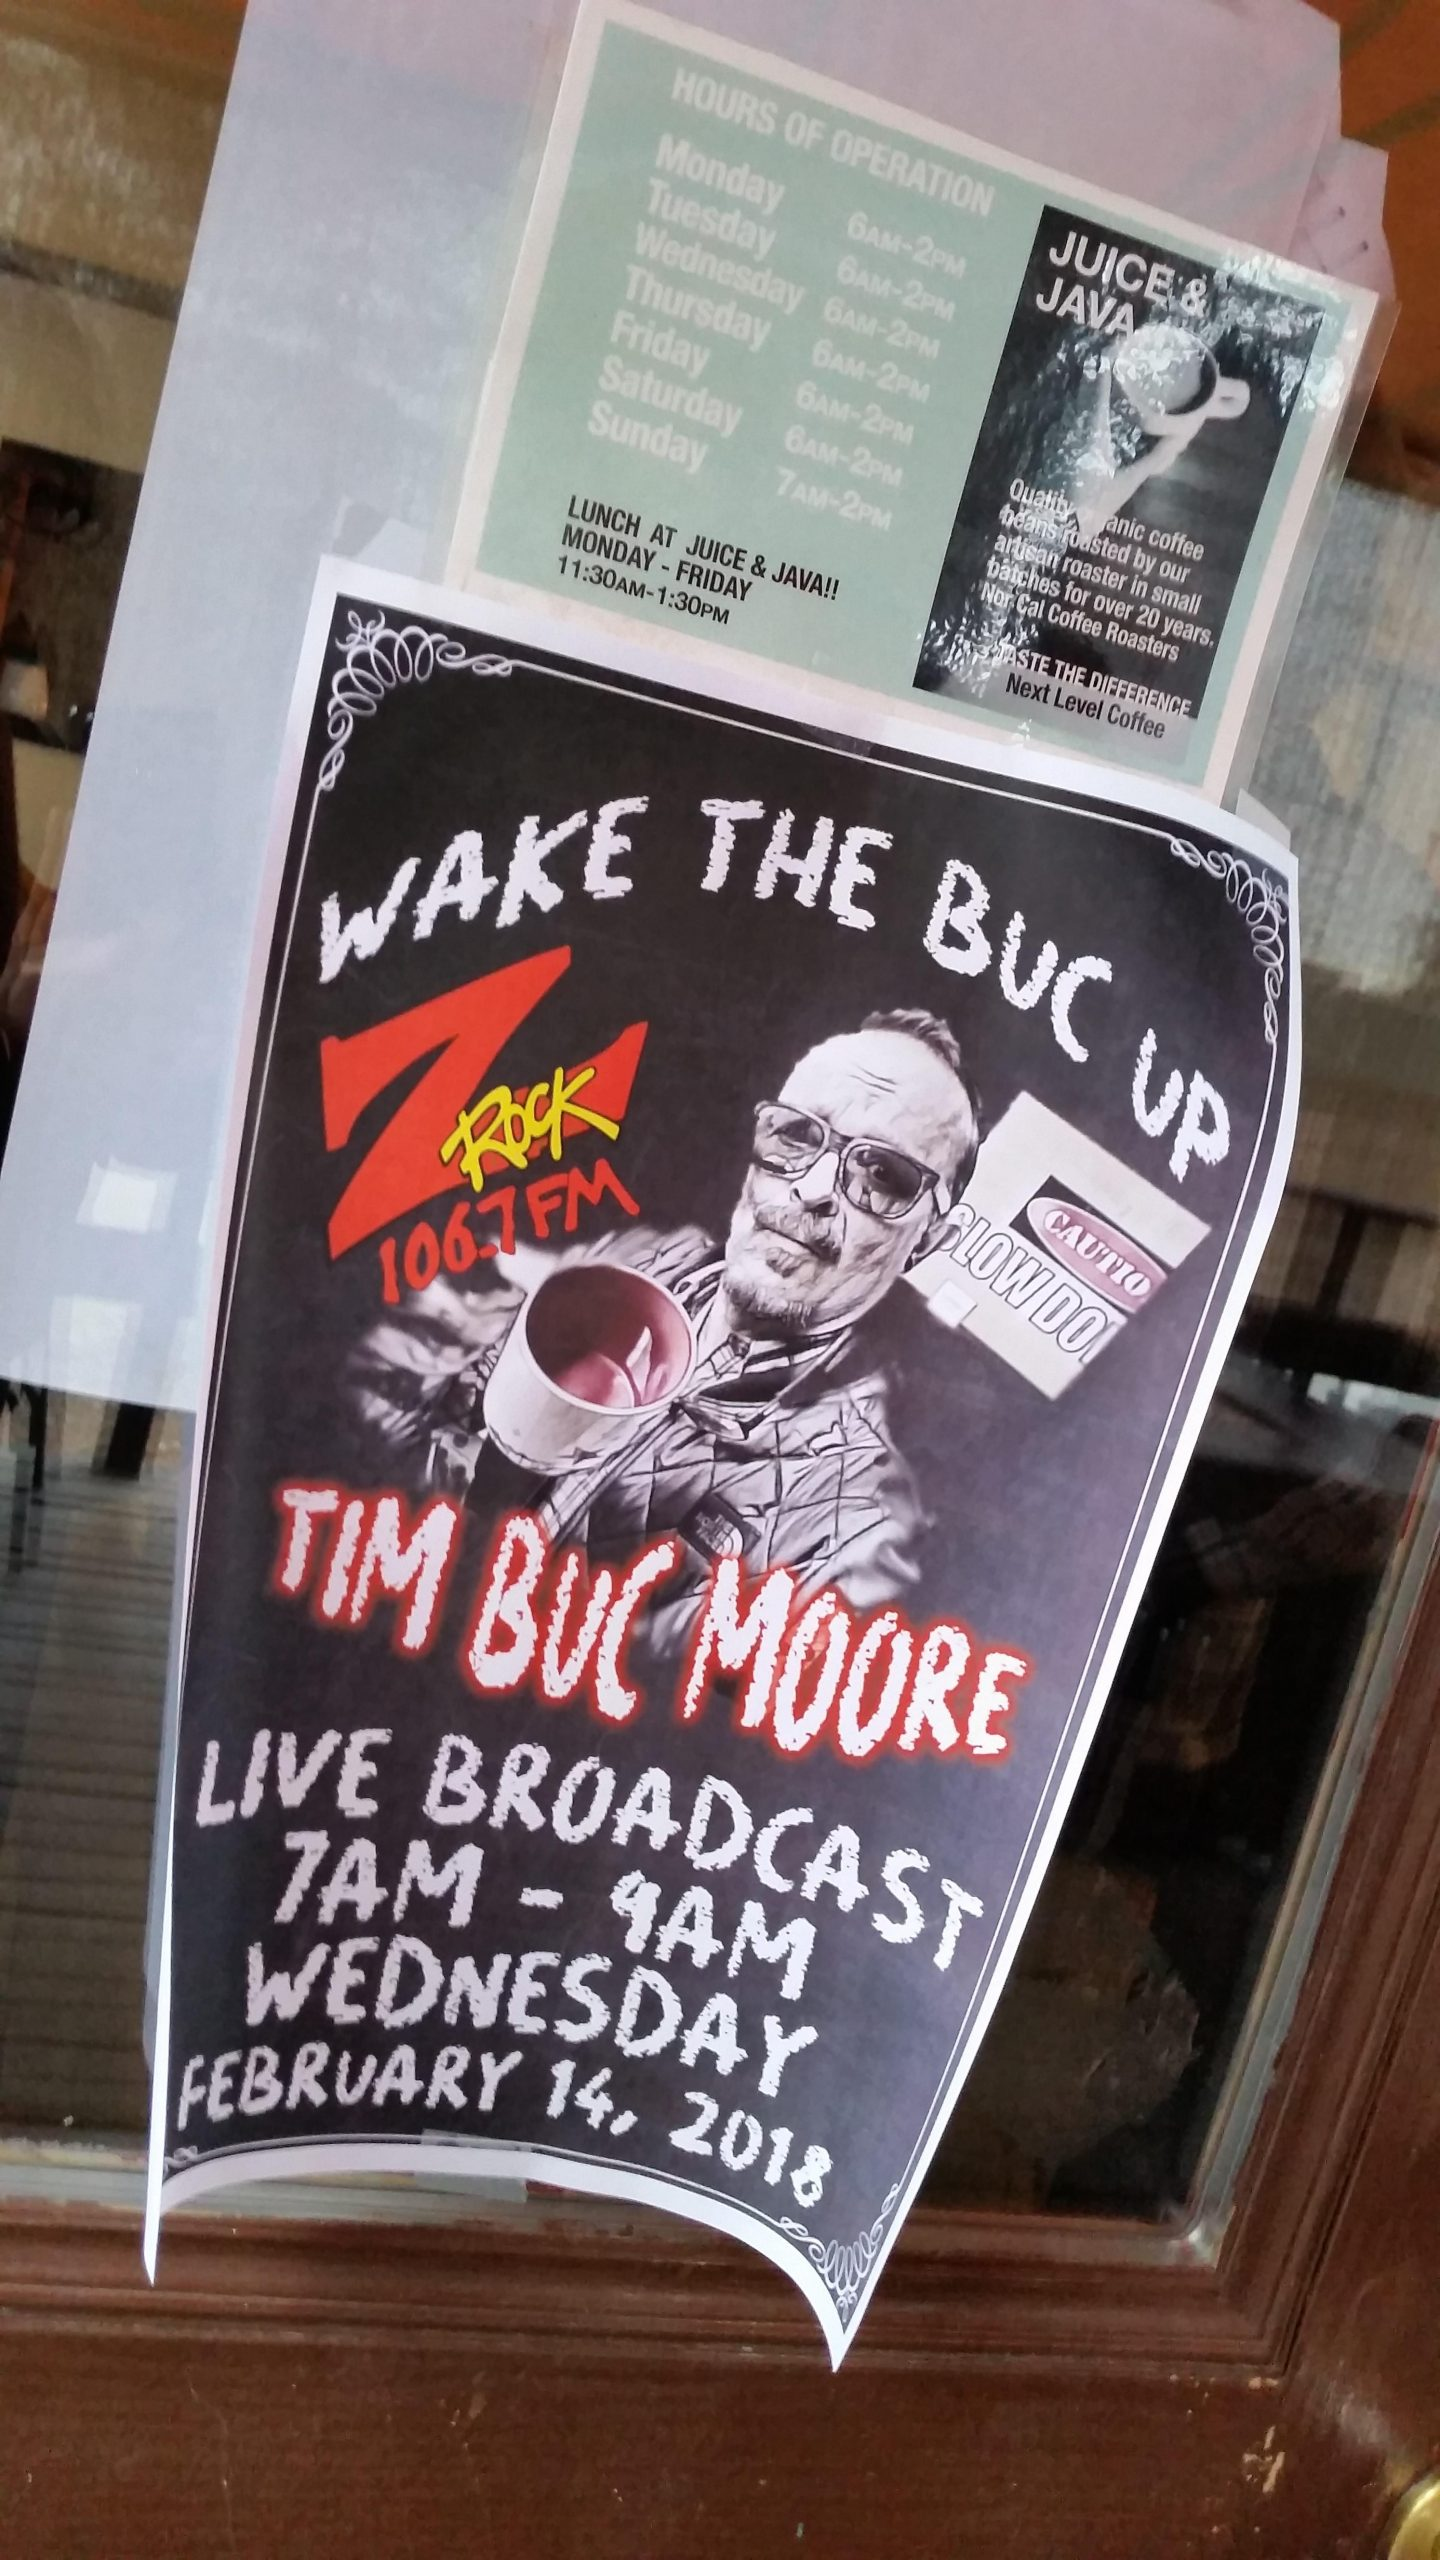 Tim Buc Moore broadcasted the morning show live from Juice and Java in Paradise for round 2 of Wake the Buc Up!